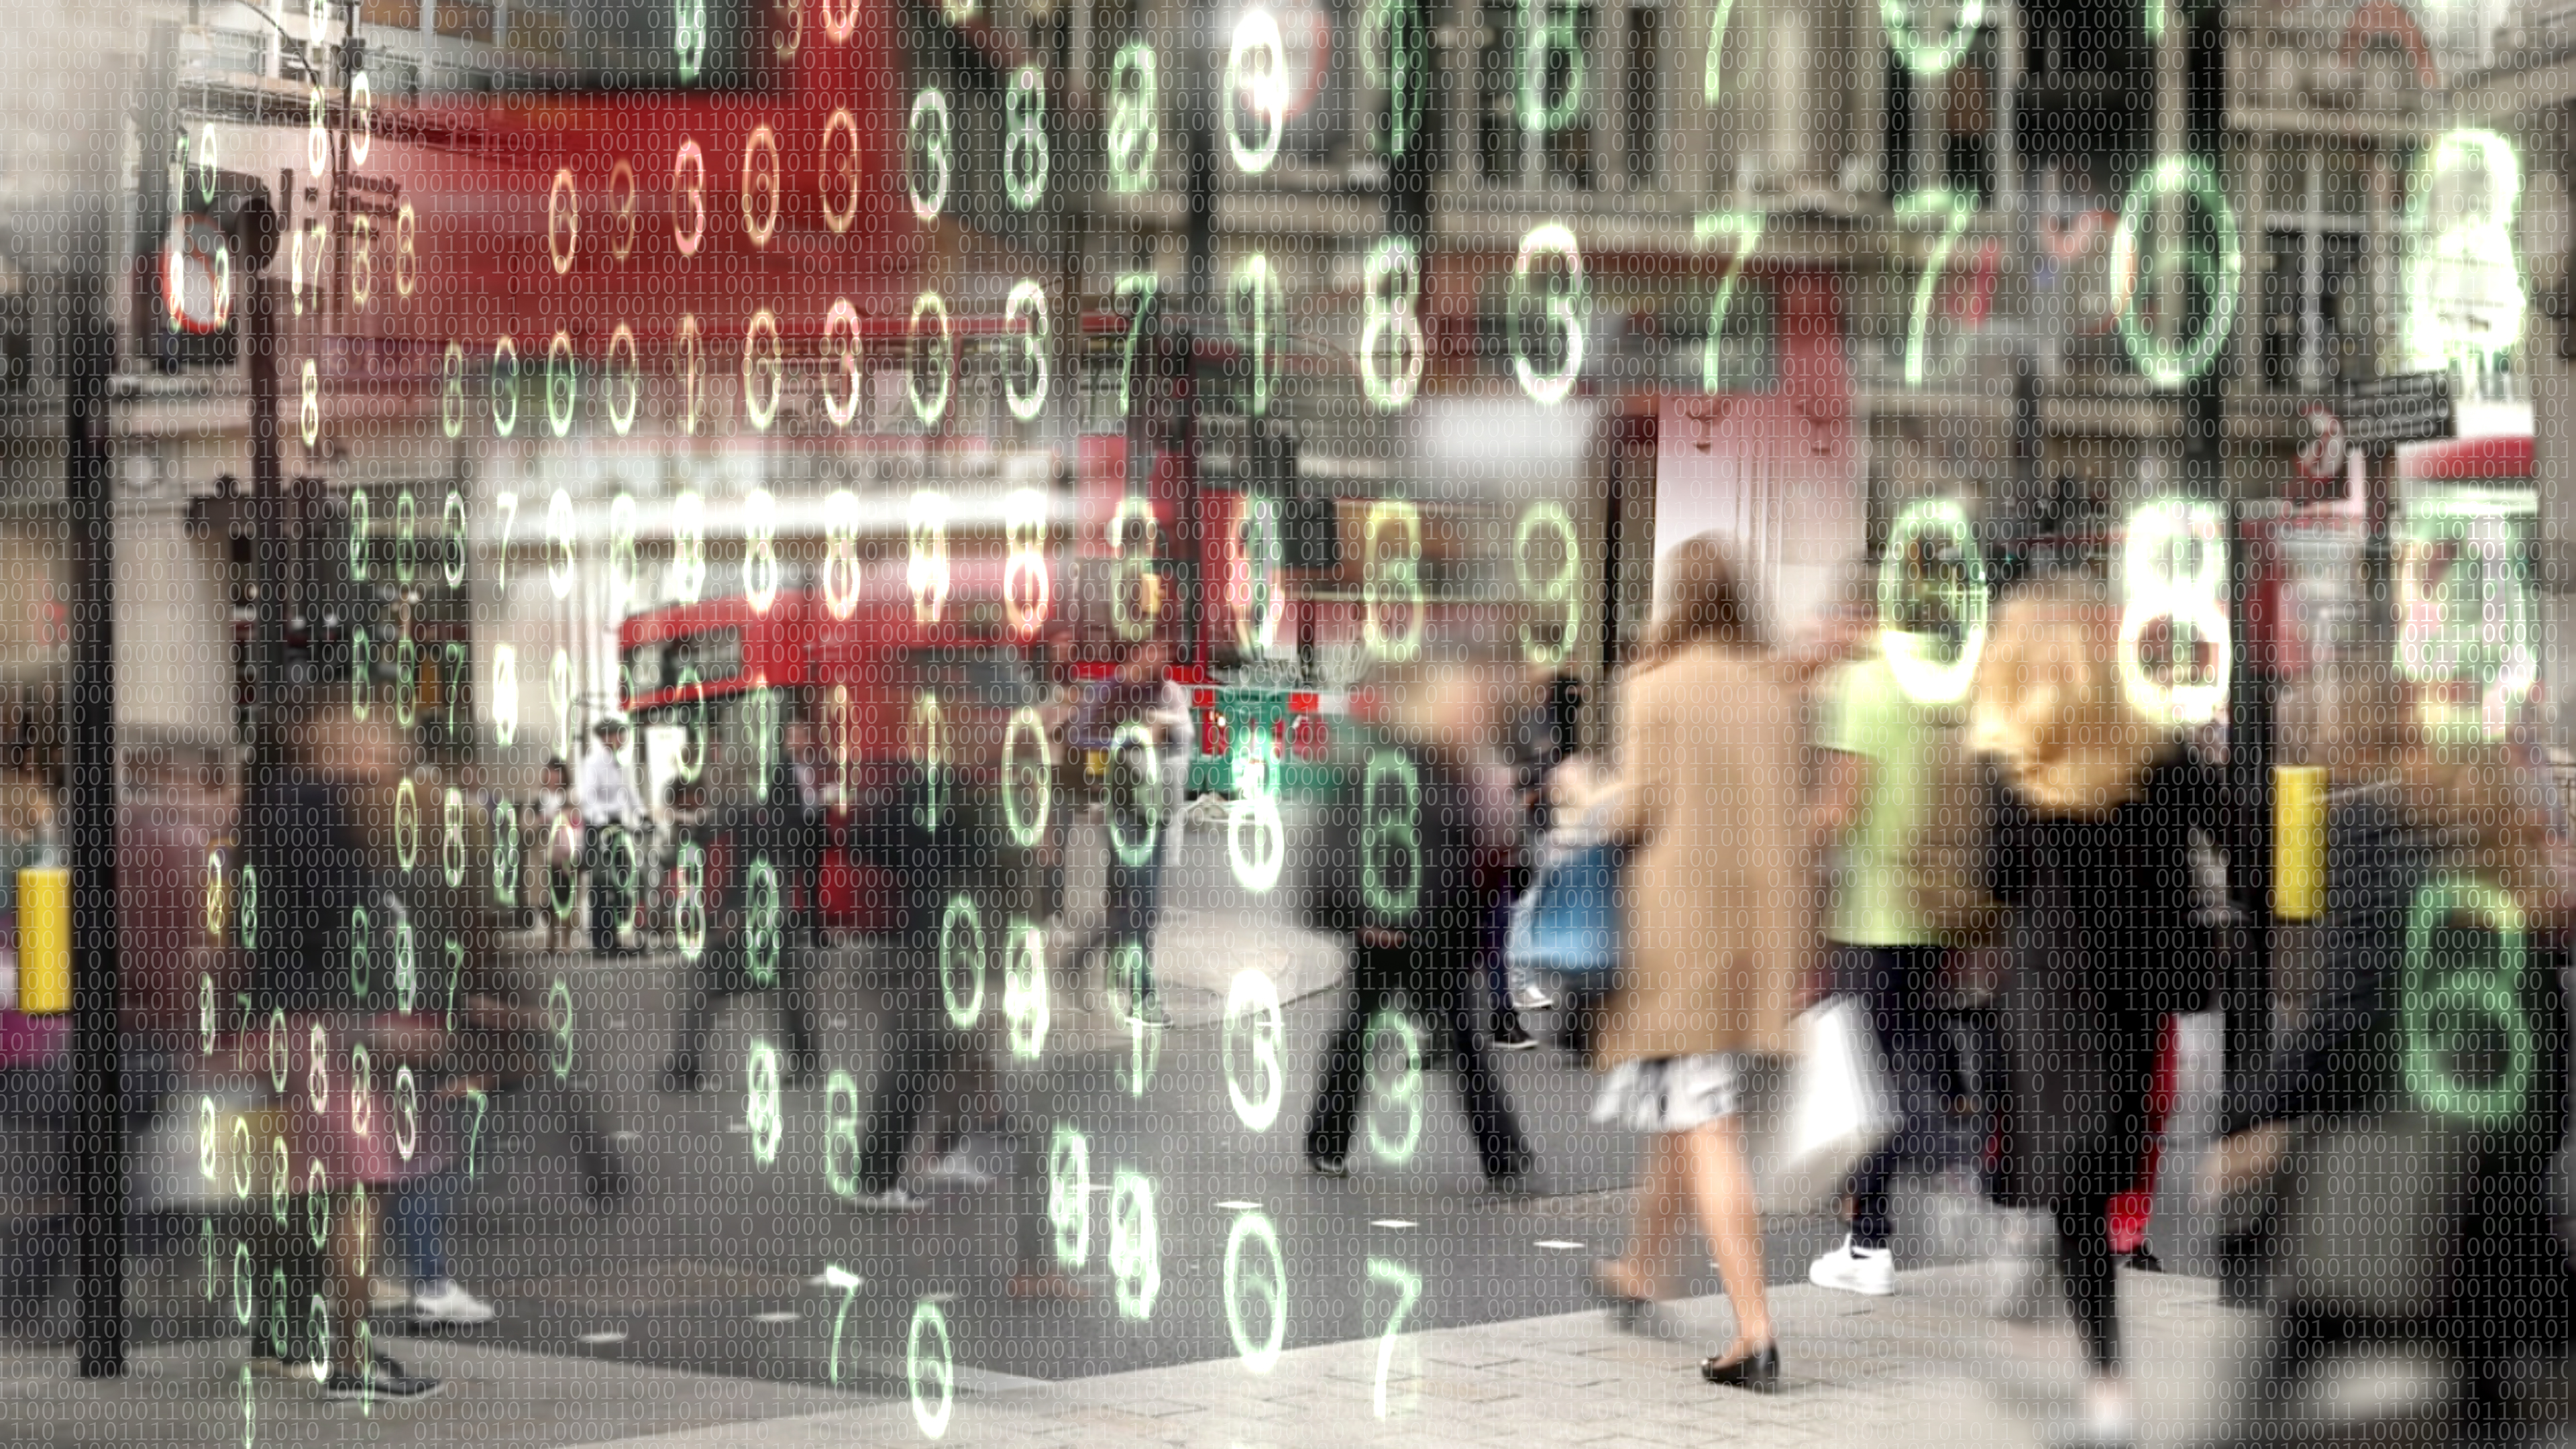 Customer privacy is an important part of business strategy | ReputationDefender